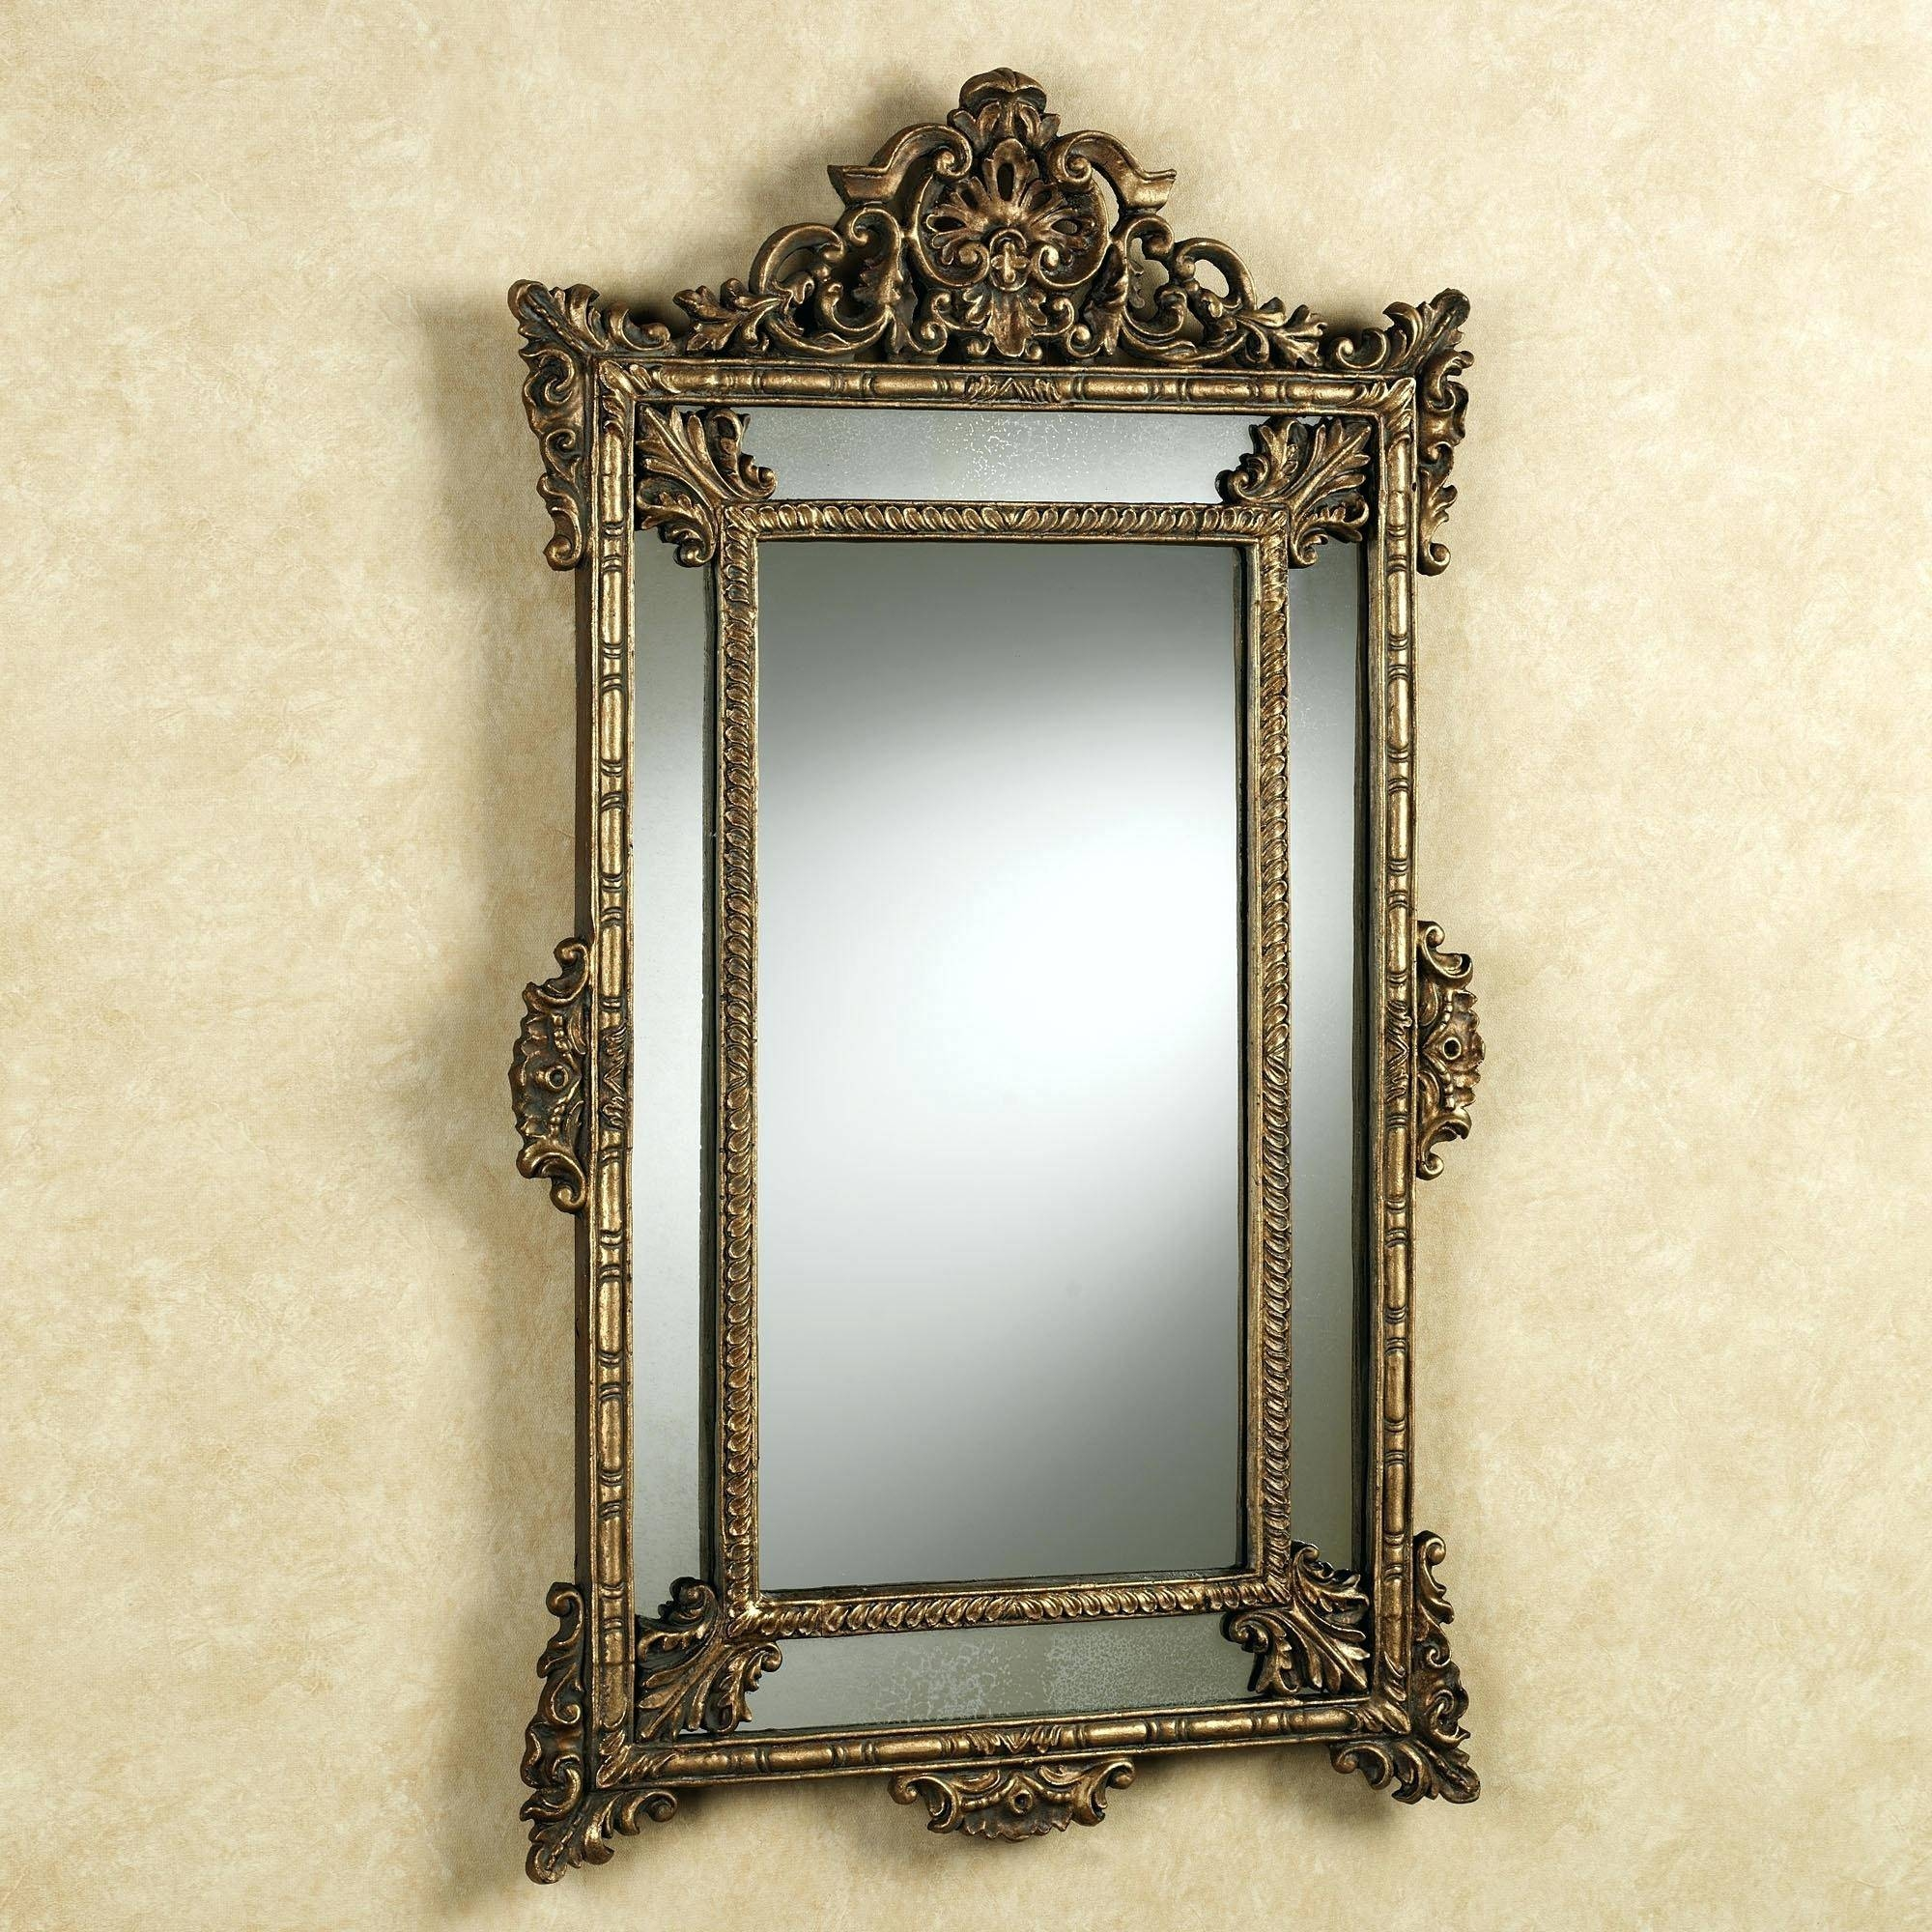 Vintage Wall Mirror Hd Walls Find Wallpapersantique Silver Mirrors with regard to Vintage Wall Mirrors (Image 21 of 25)